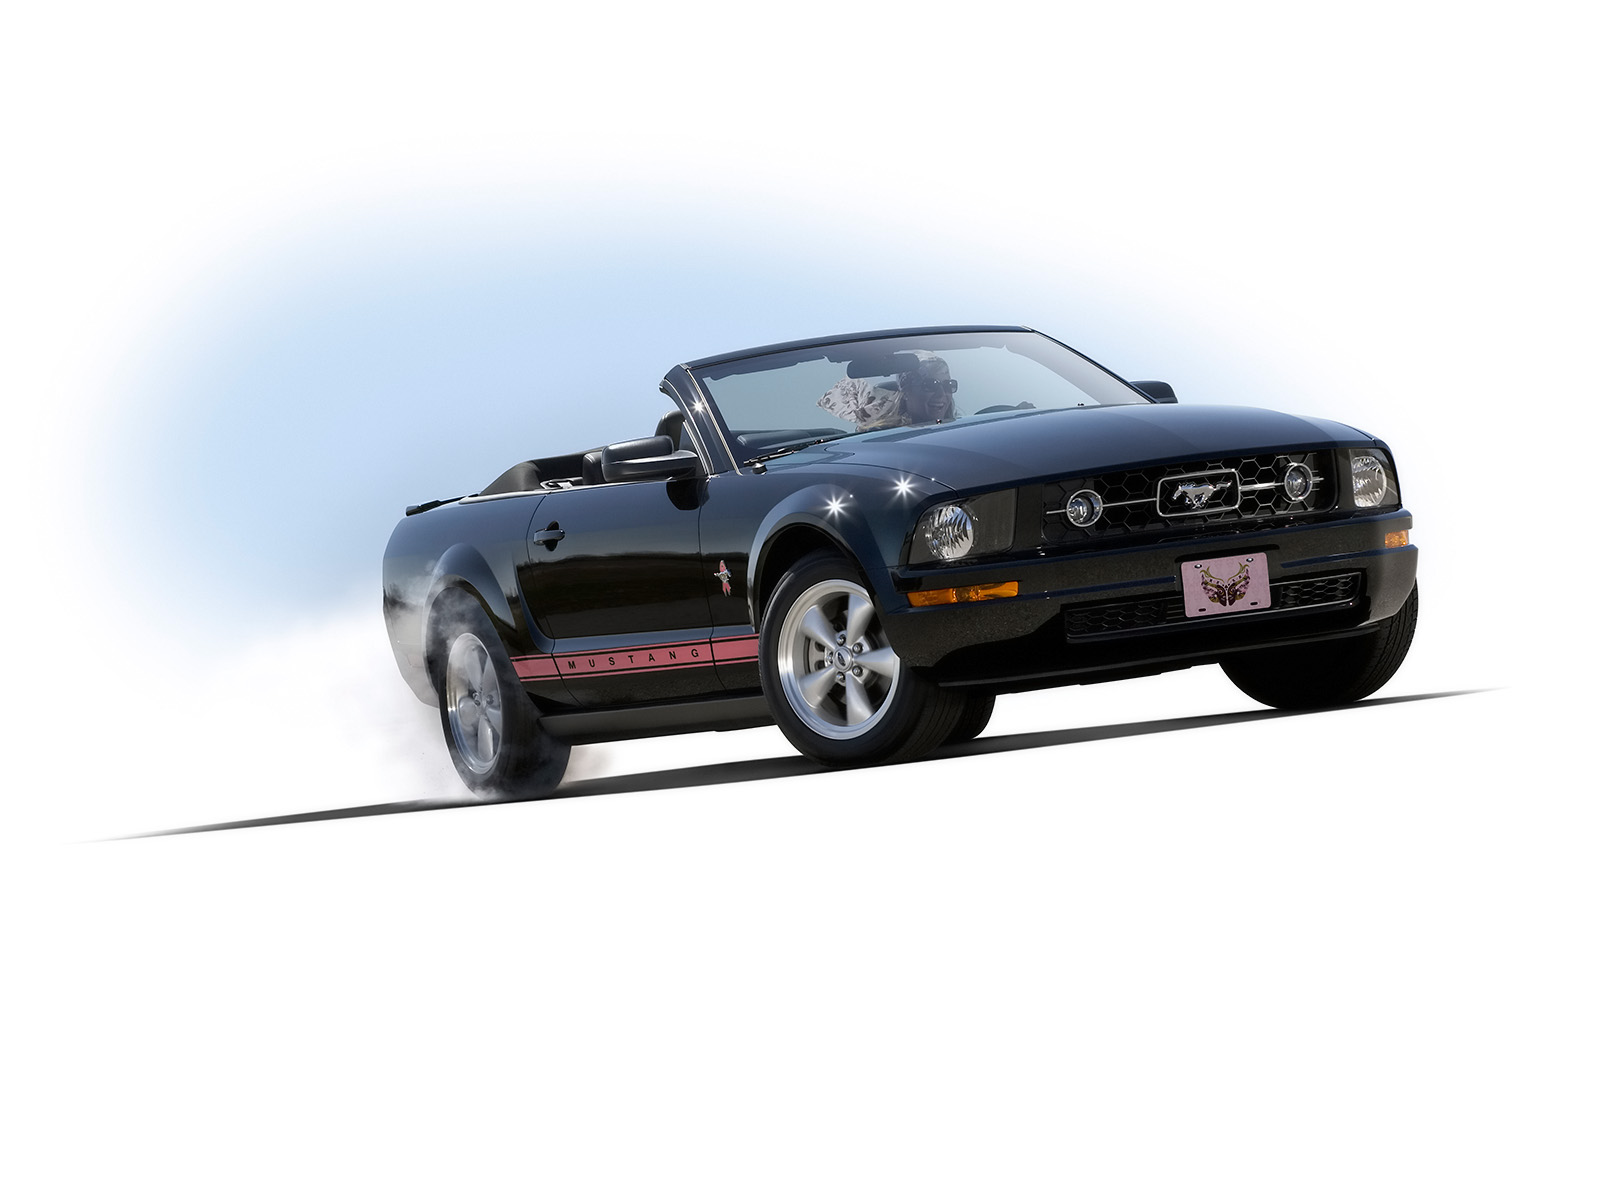 Ford Mustang WIP Edition photo 43953